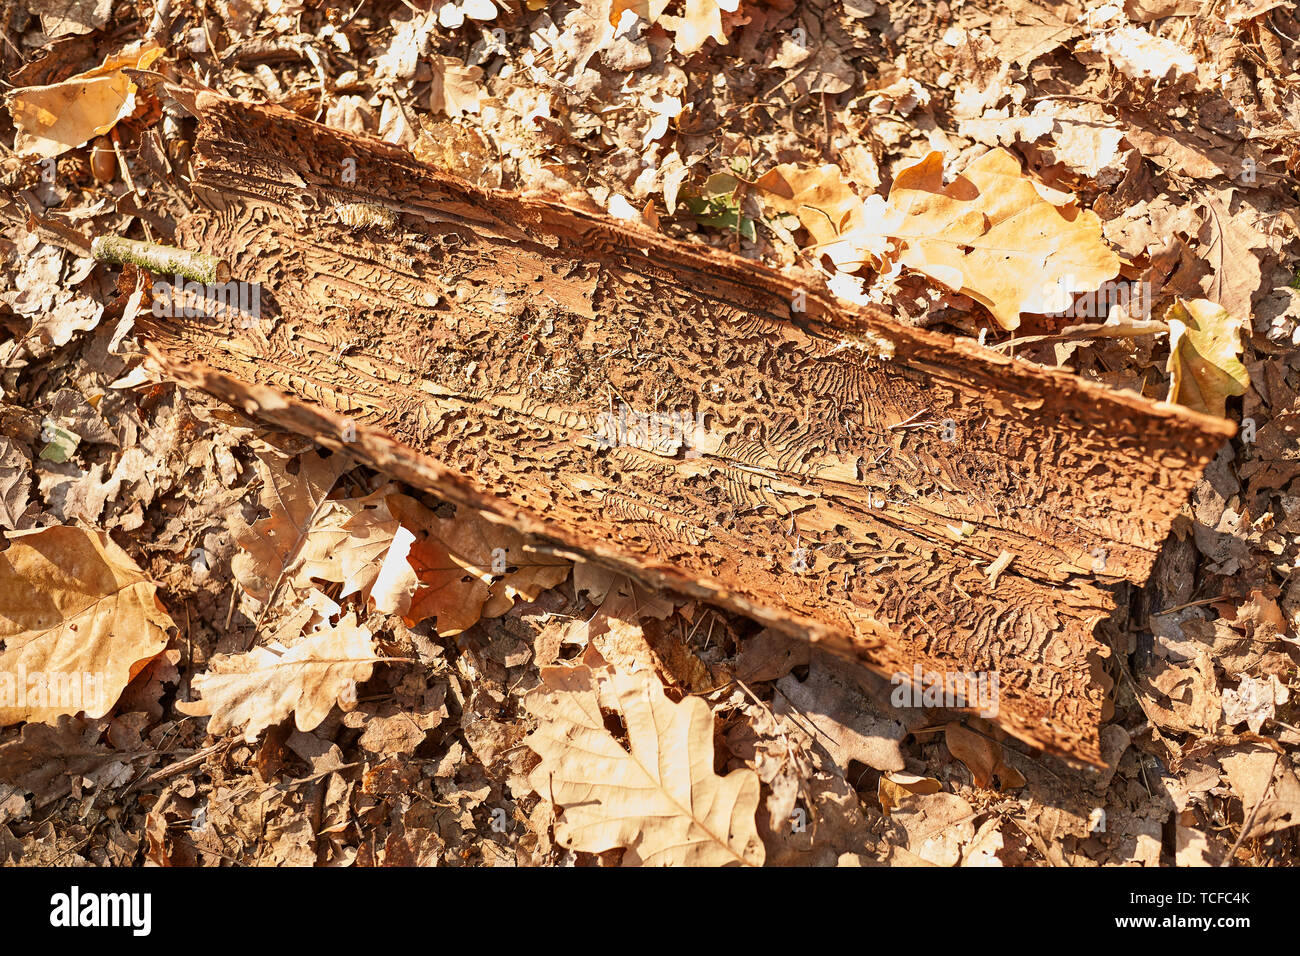 Tree bark with bark beetle Infestation on autumn leaves in pest control - Stock Image